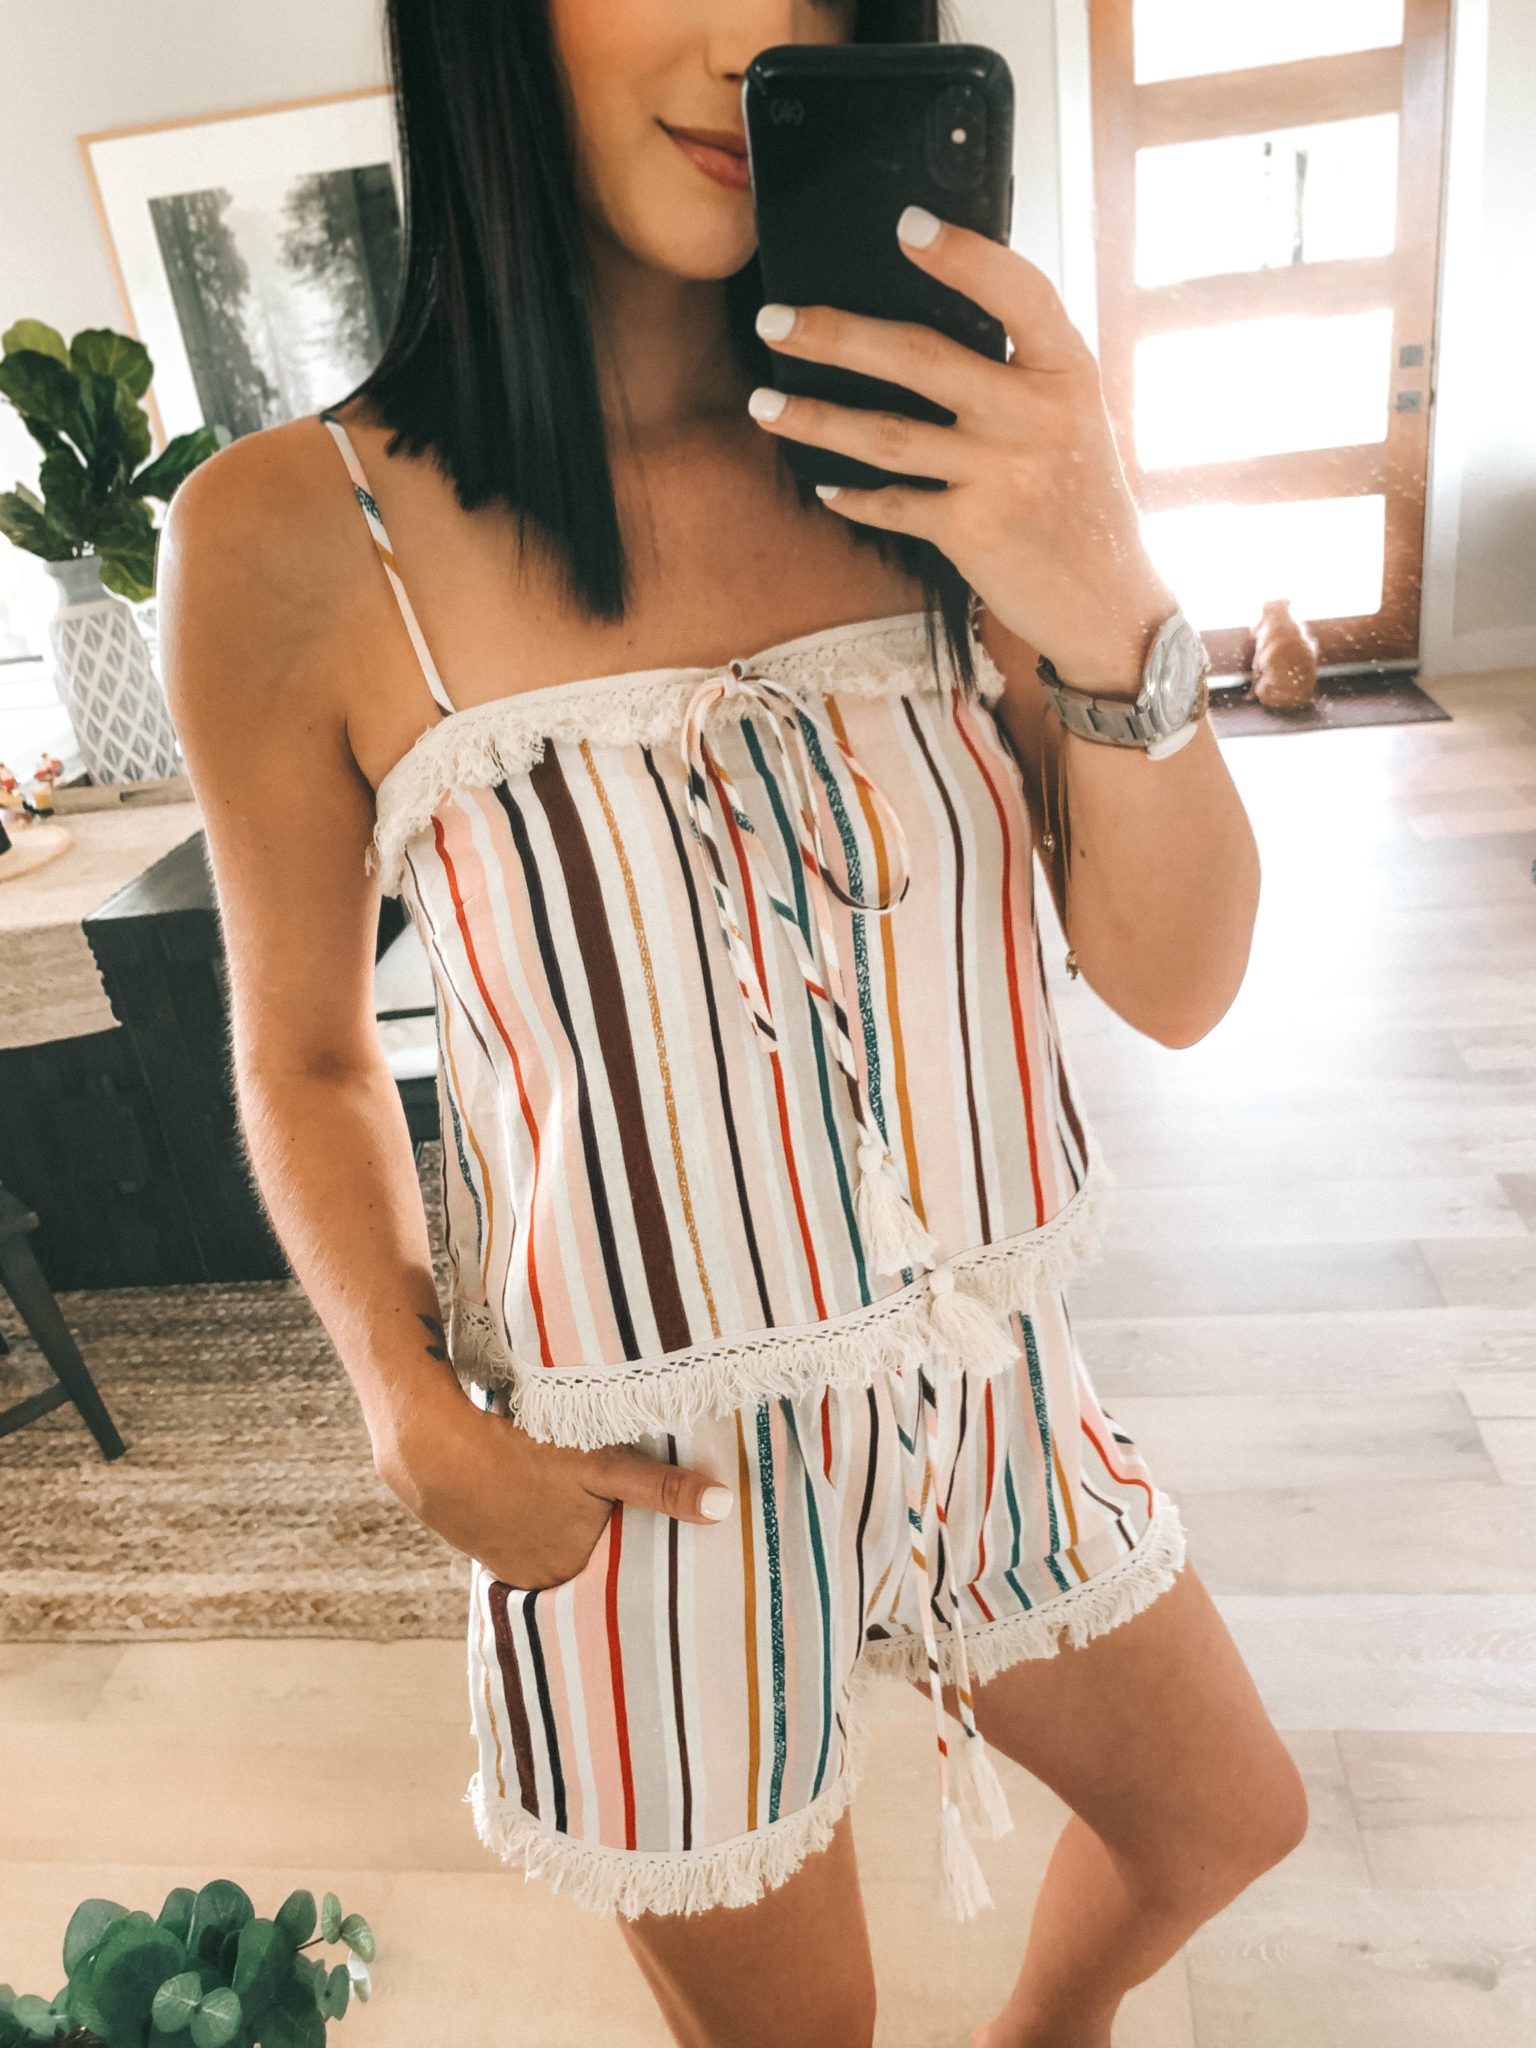 Amaryllis Apparel Abroad Turks & Caicos Summer Try-On by popular Austin fashion blog, Dressed to Kill: image of a woman wearing a multi color stripe Amaryllis Apparel Staycation Set.